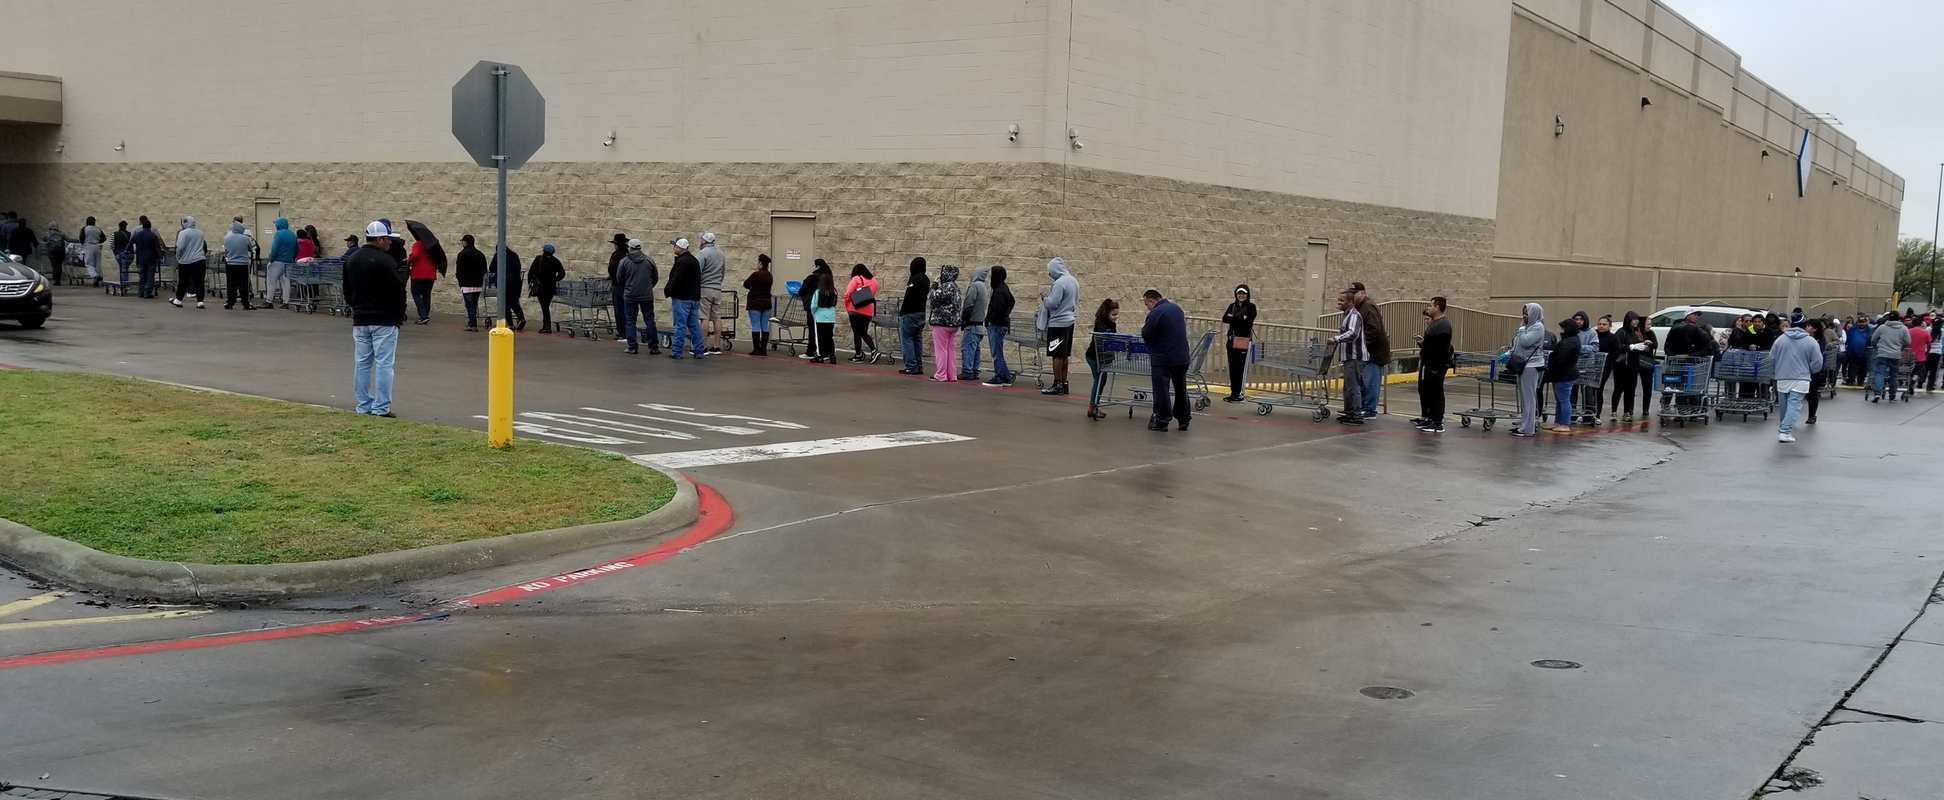 people lined up at a big box club store